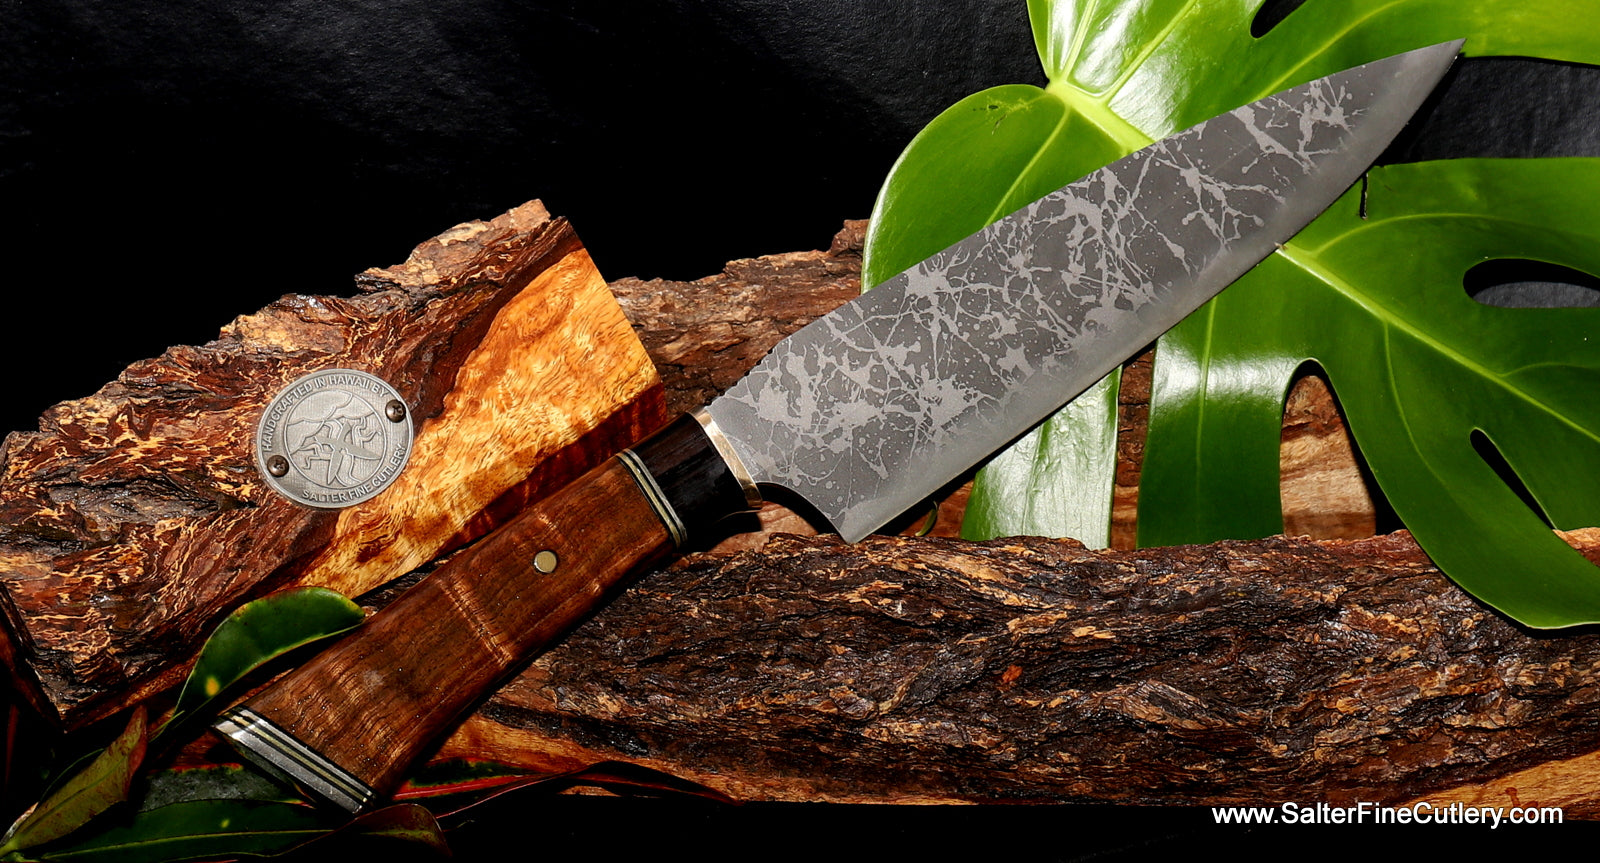 In Stock Item: MkII Limited Edition Collectible Knife